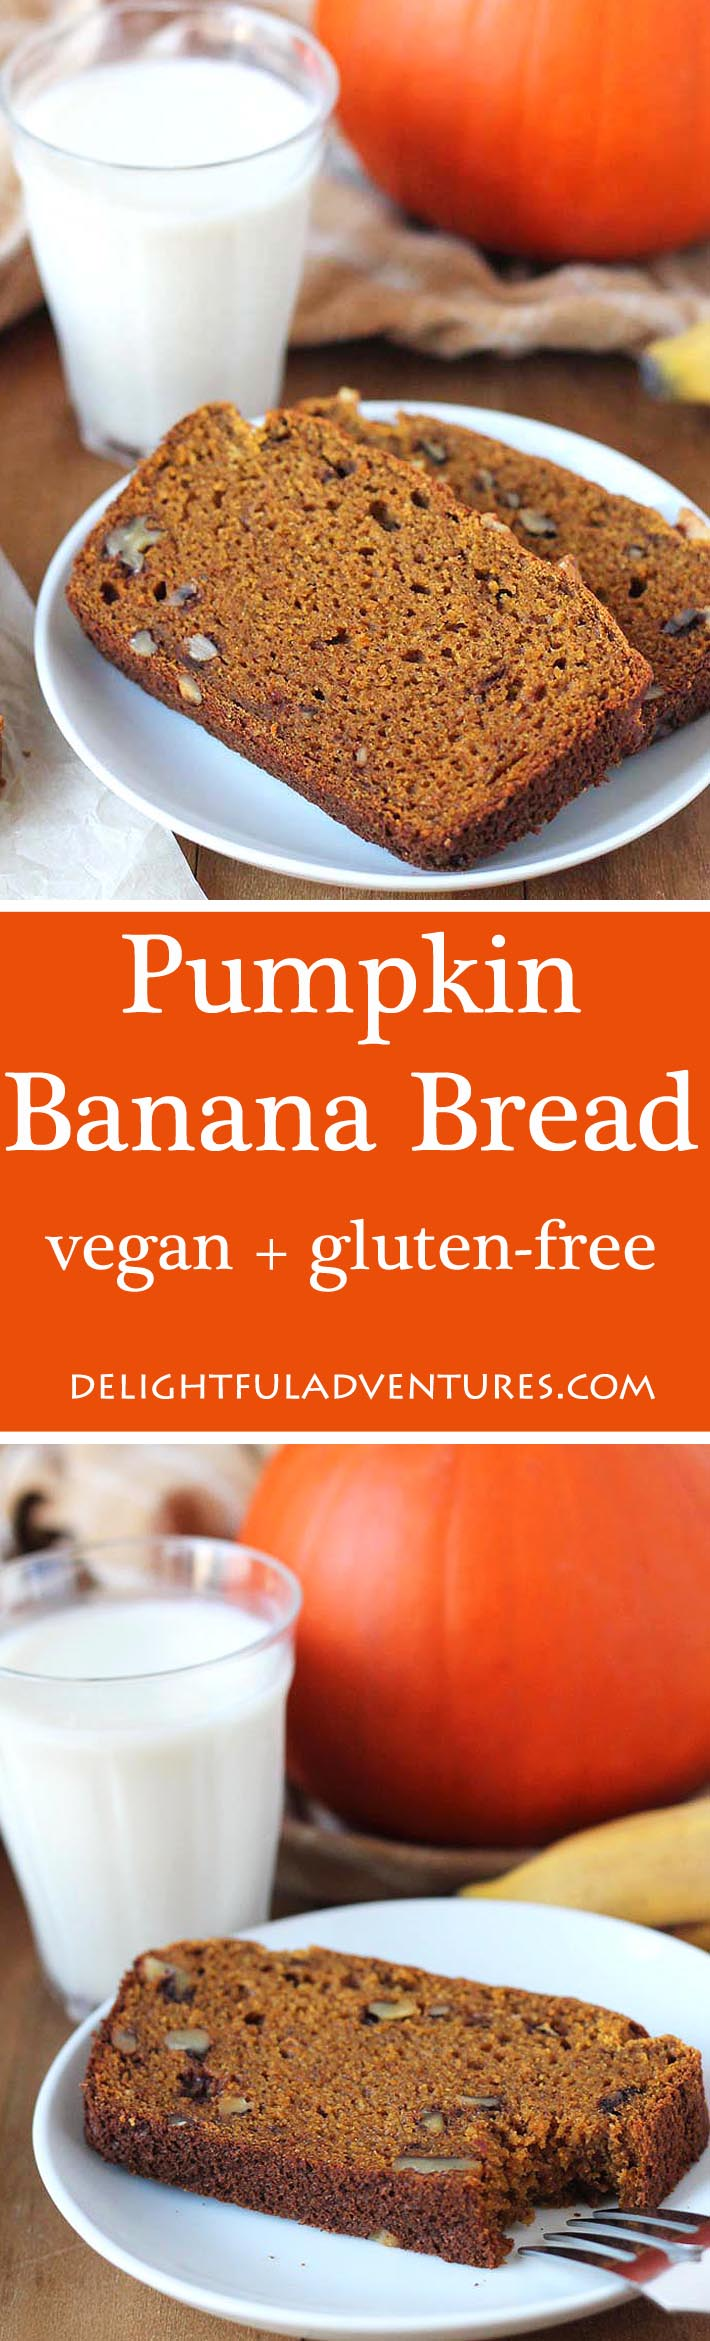 Can't decide between banana bread and pumpkin bread? Then make this Vegan Gluten Free Pumpkin Banana Bread which blends the flavours of both, perfectly. #vegan #veganglutenfree #pumpkinbread #bananabread #pumpkinbananabread